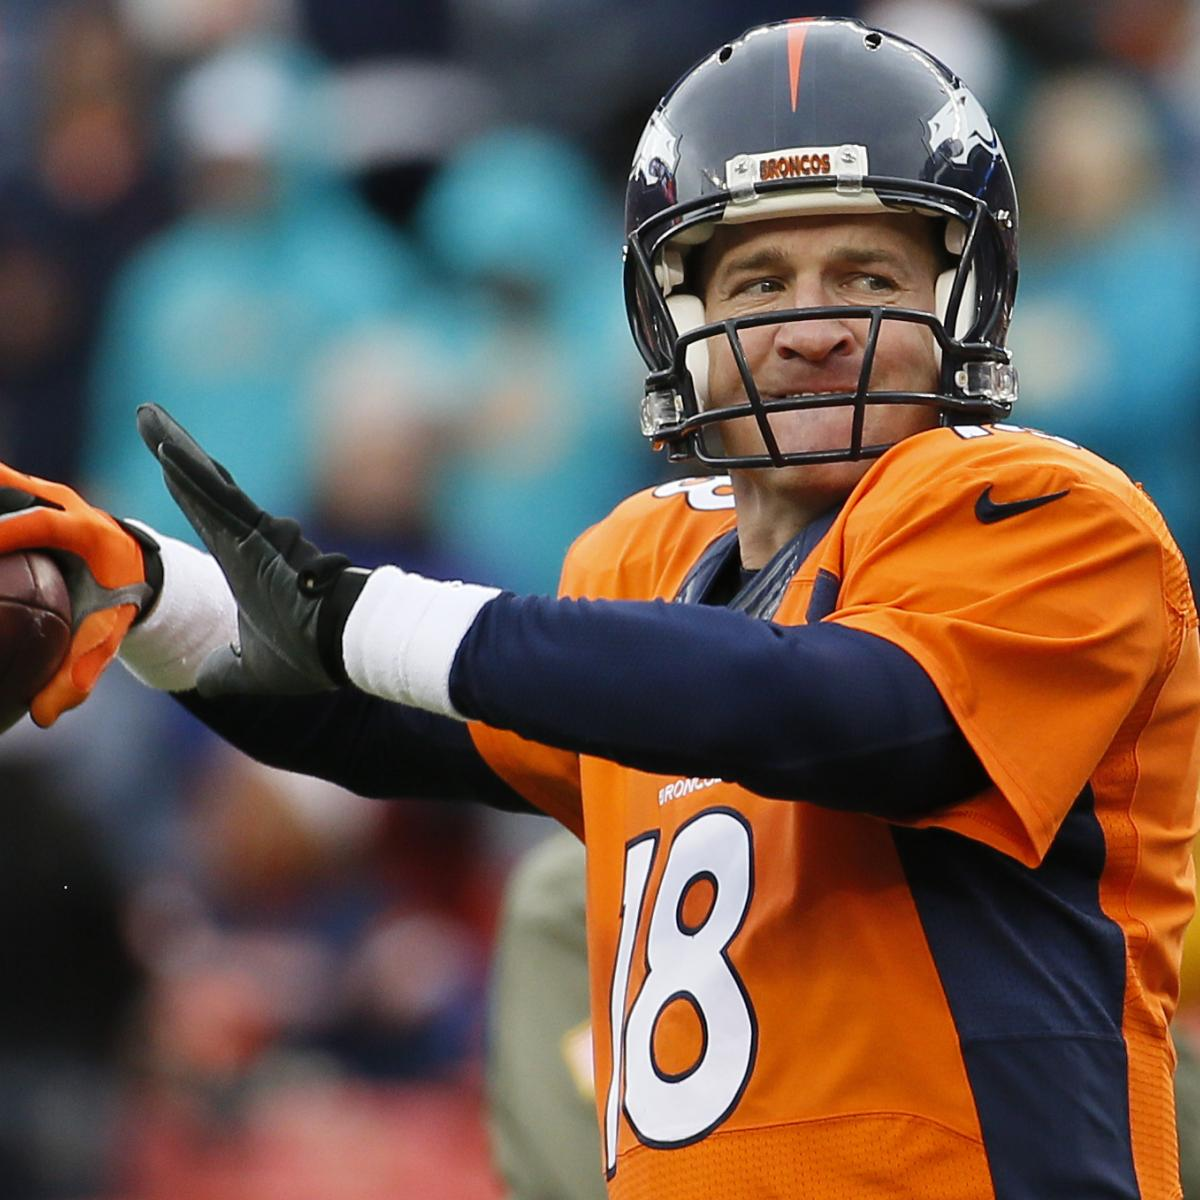 Miami Dolphins Vs. Denver Broncos: Live Denver Score And